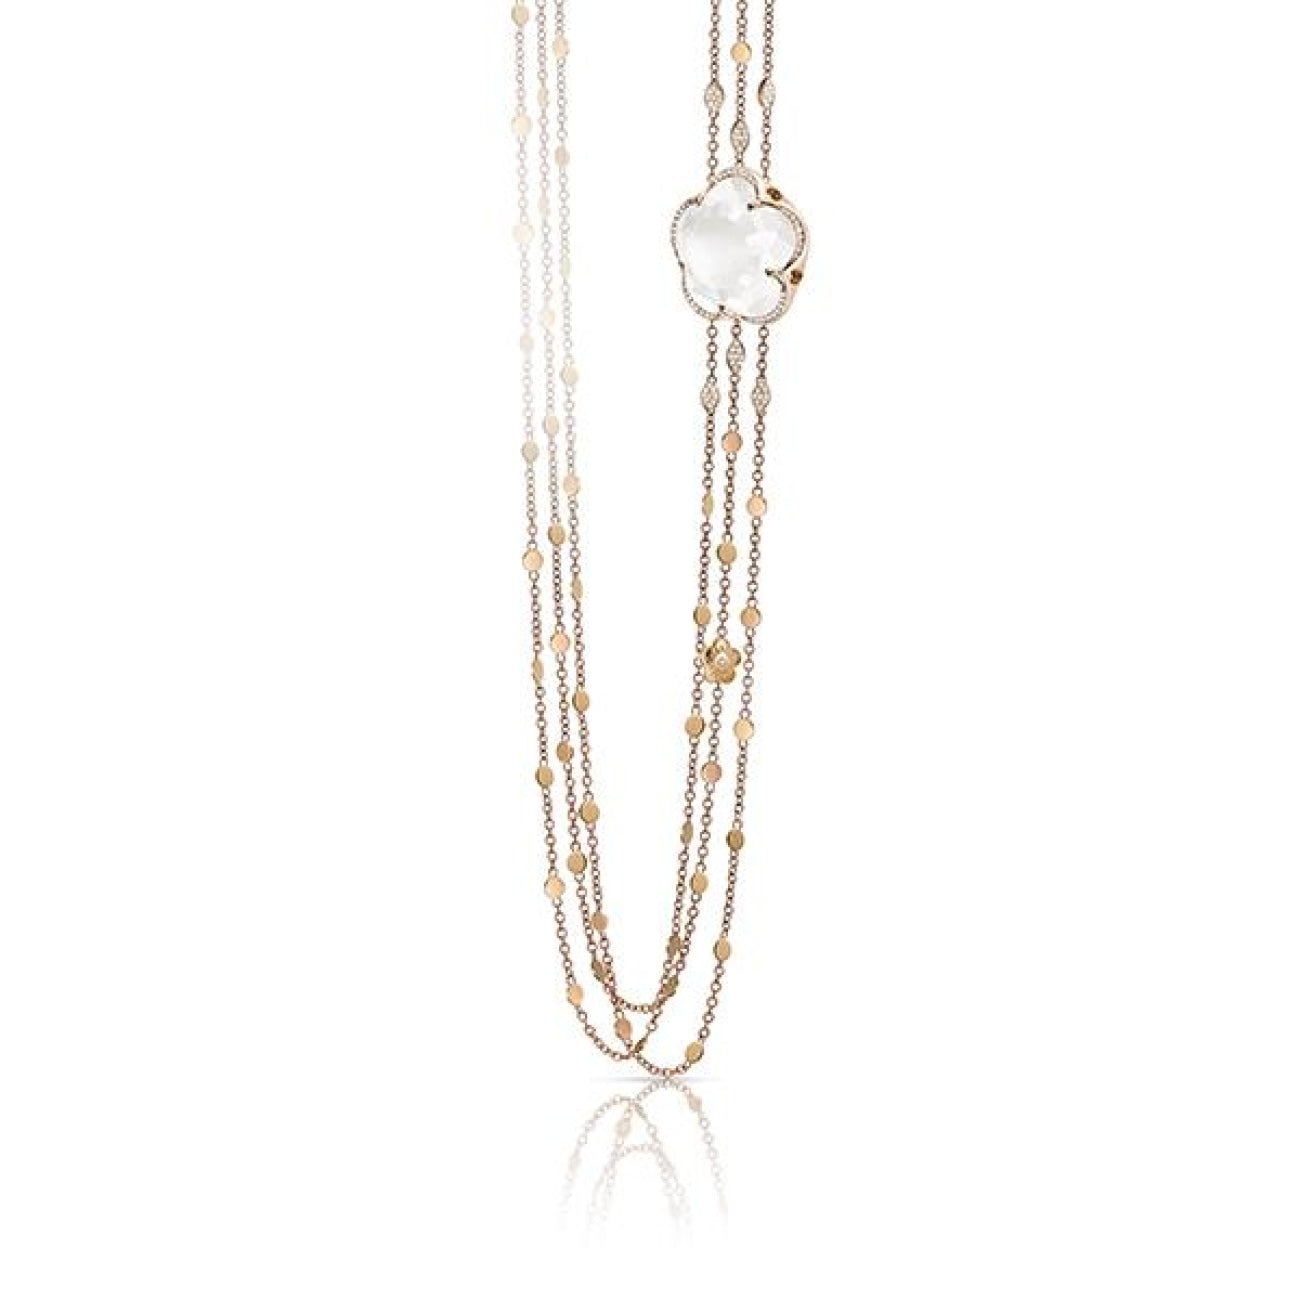 Pasquale Bruni Jewelry - Bon Ton Milky Quartz Rose Gold Necklace | Manfredi Jewels